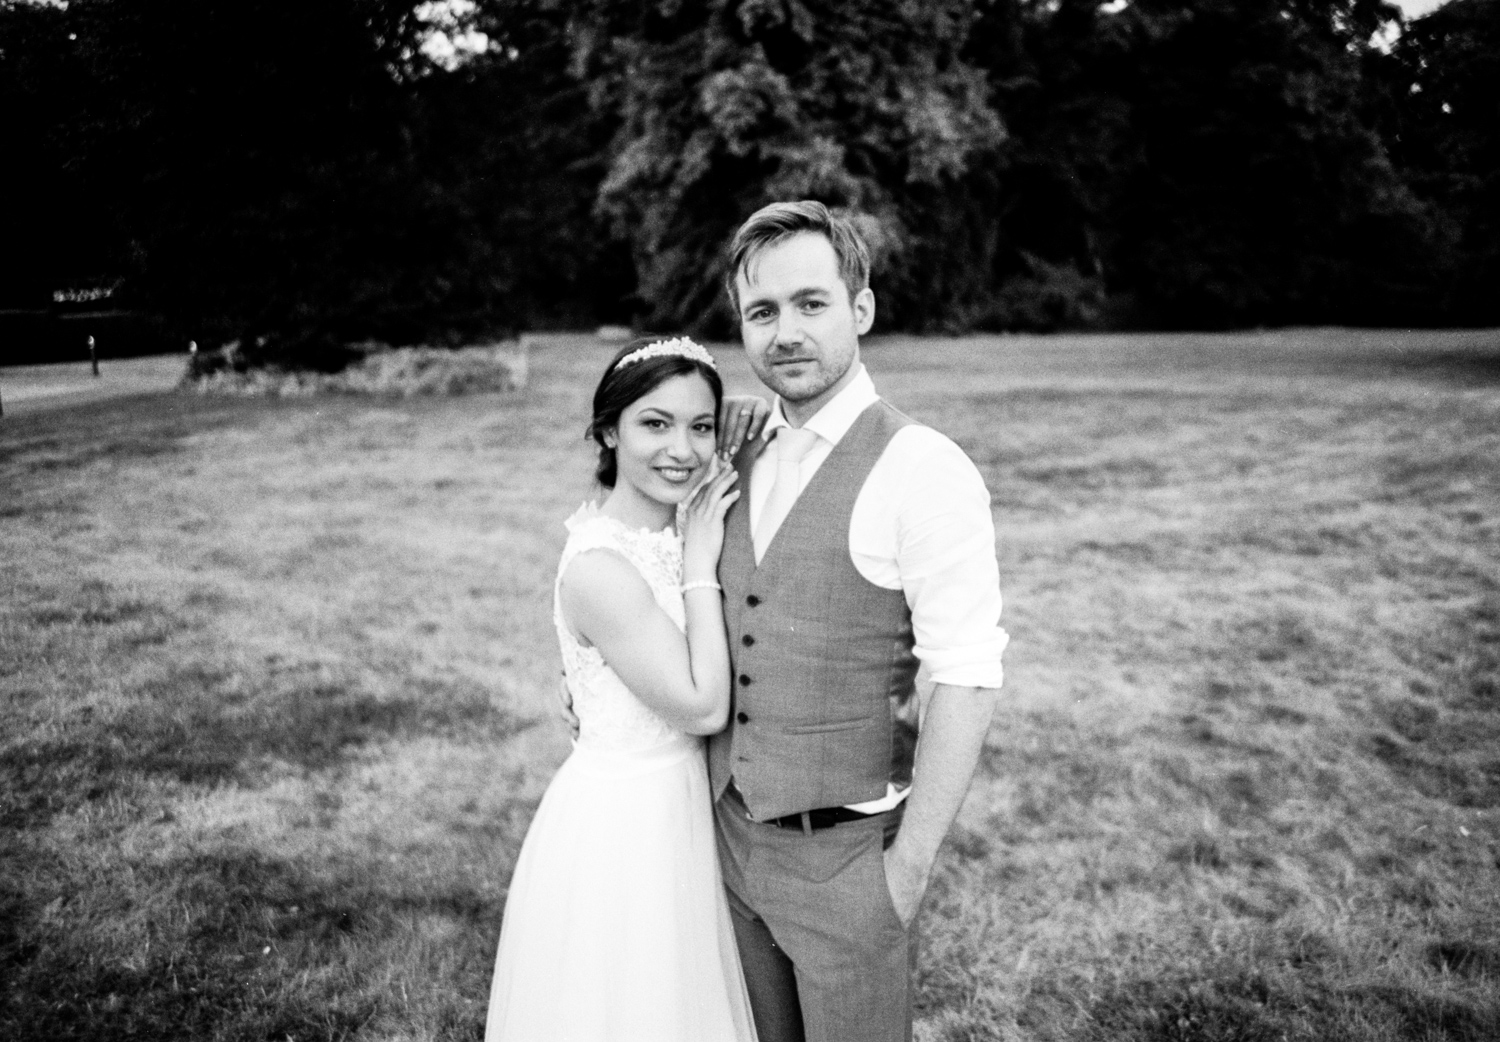 Photographing with film at weddings - a bride and groom